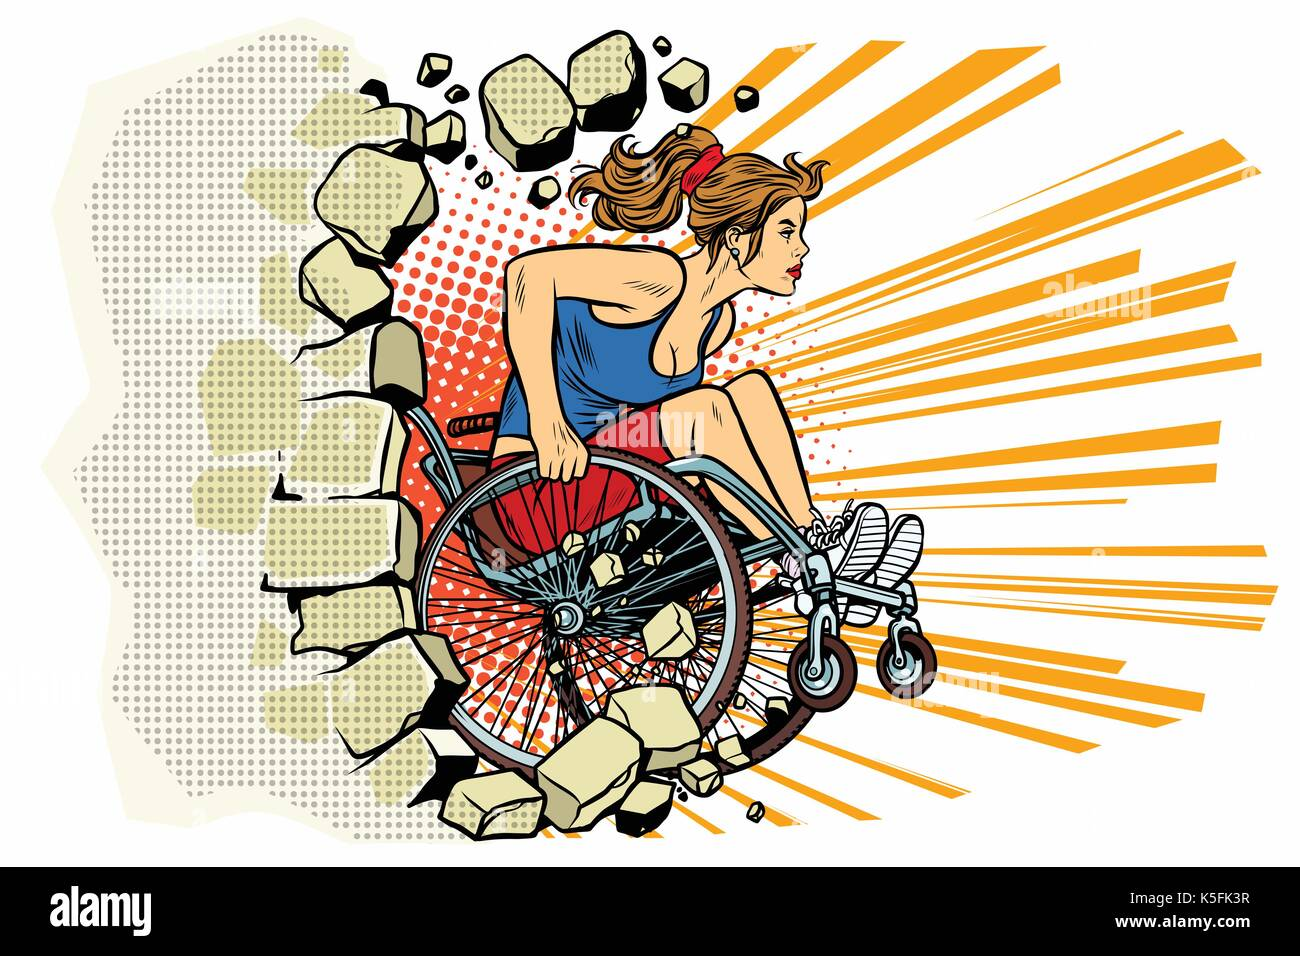 Disabled Athlete Stock Vector Images - Alamy